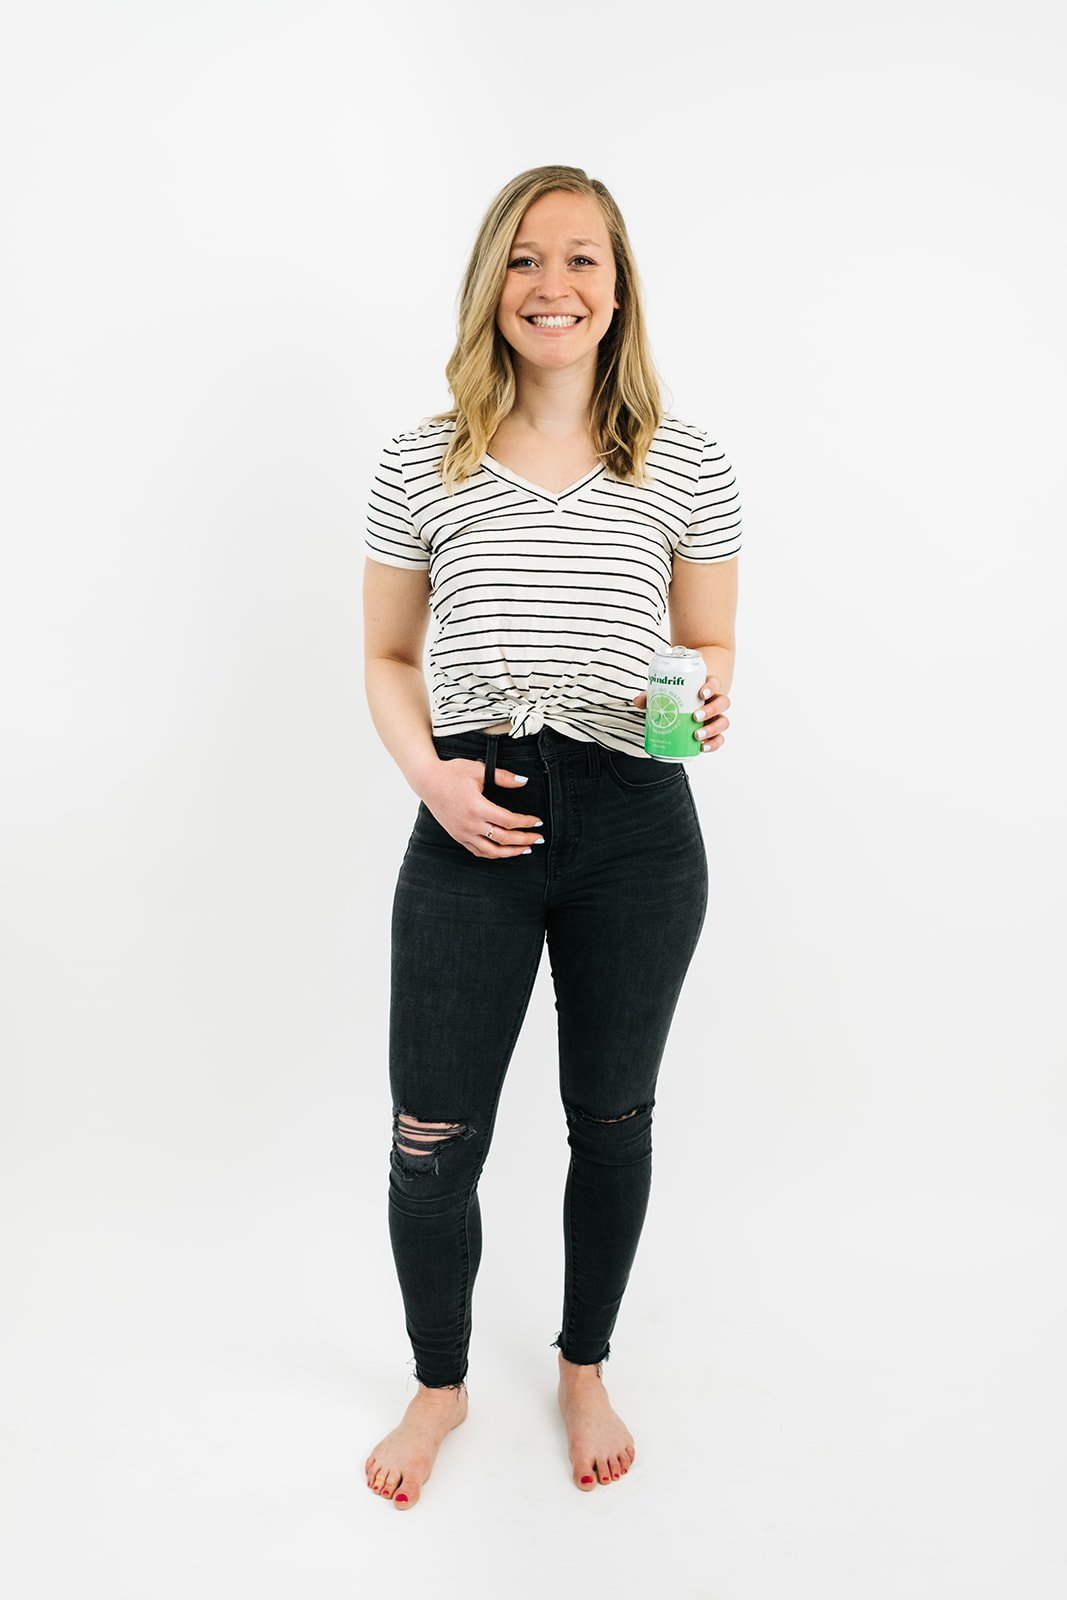 blonde woman in black jeans and a striped t-shirt holding a can